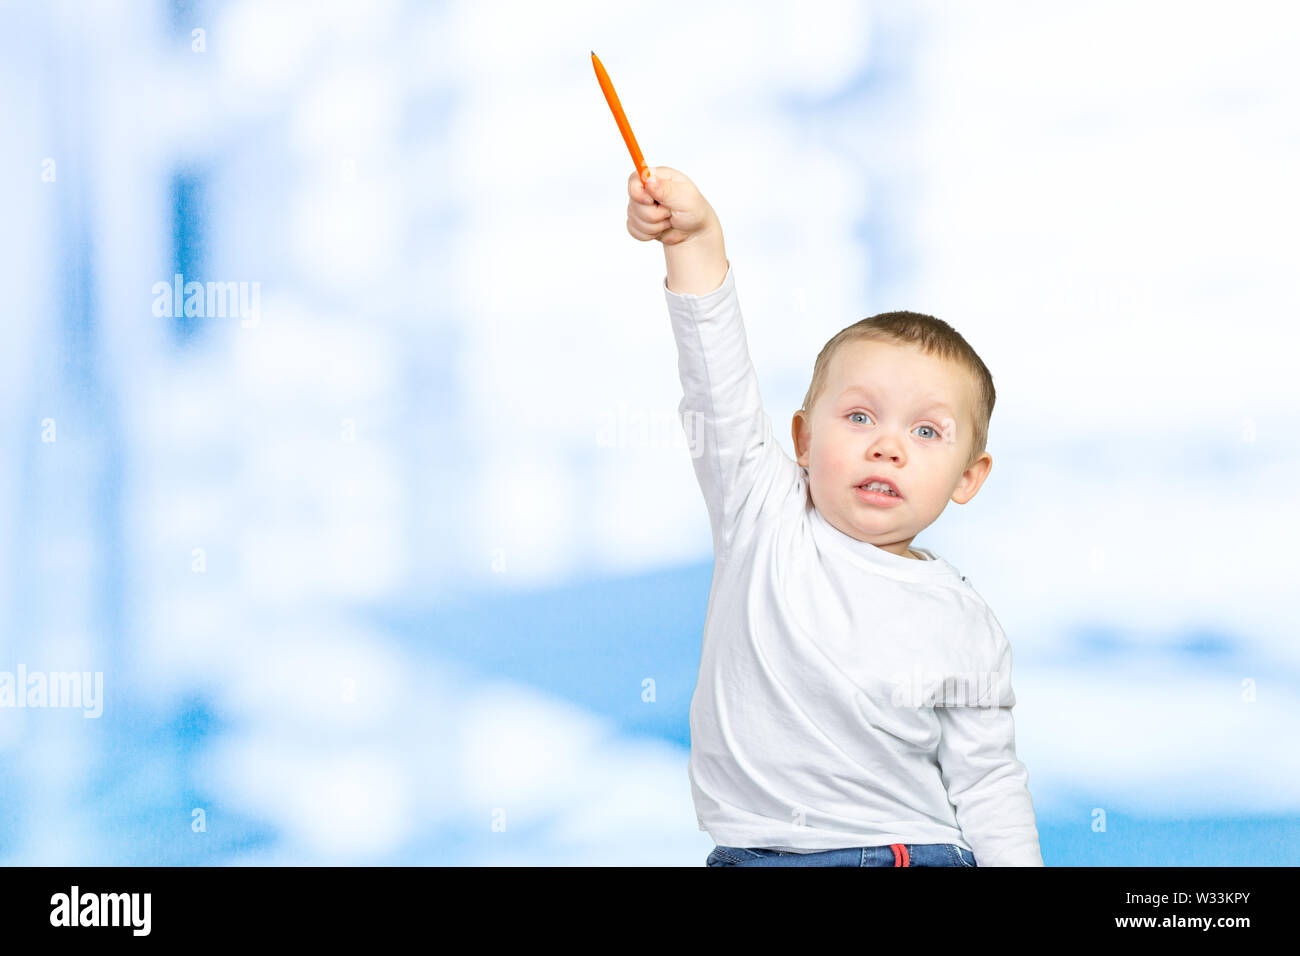 Cheerful little boy pointing up - Stock Image